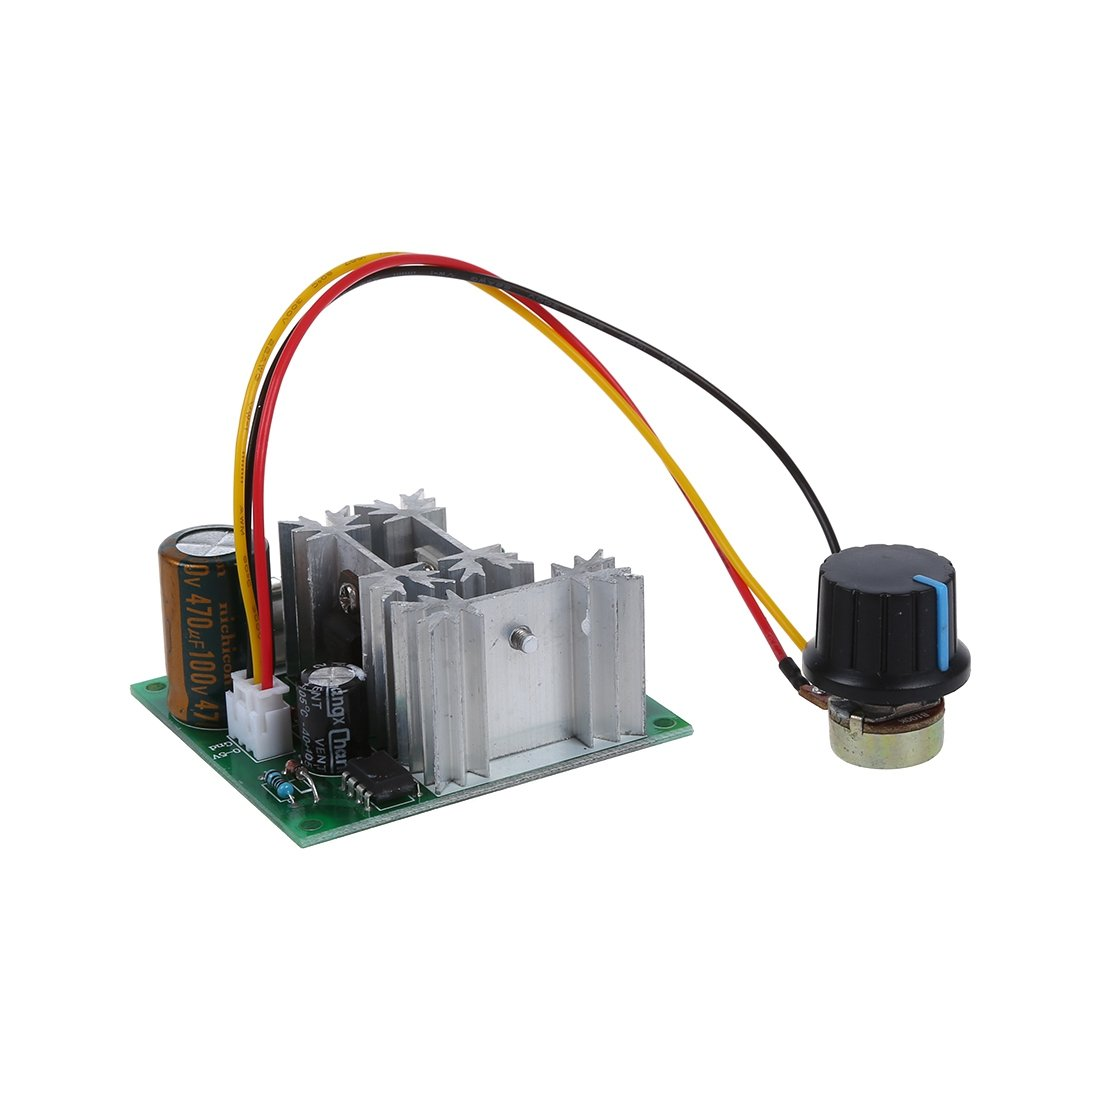 Cheap Dc Motor Speed Controller High Voltage Find Simple Pwn Control Get Quotations Regulator Sodialr 10a Pwm Controllers